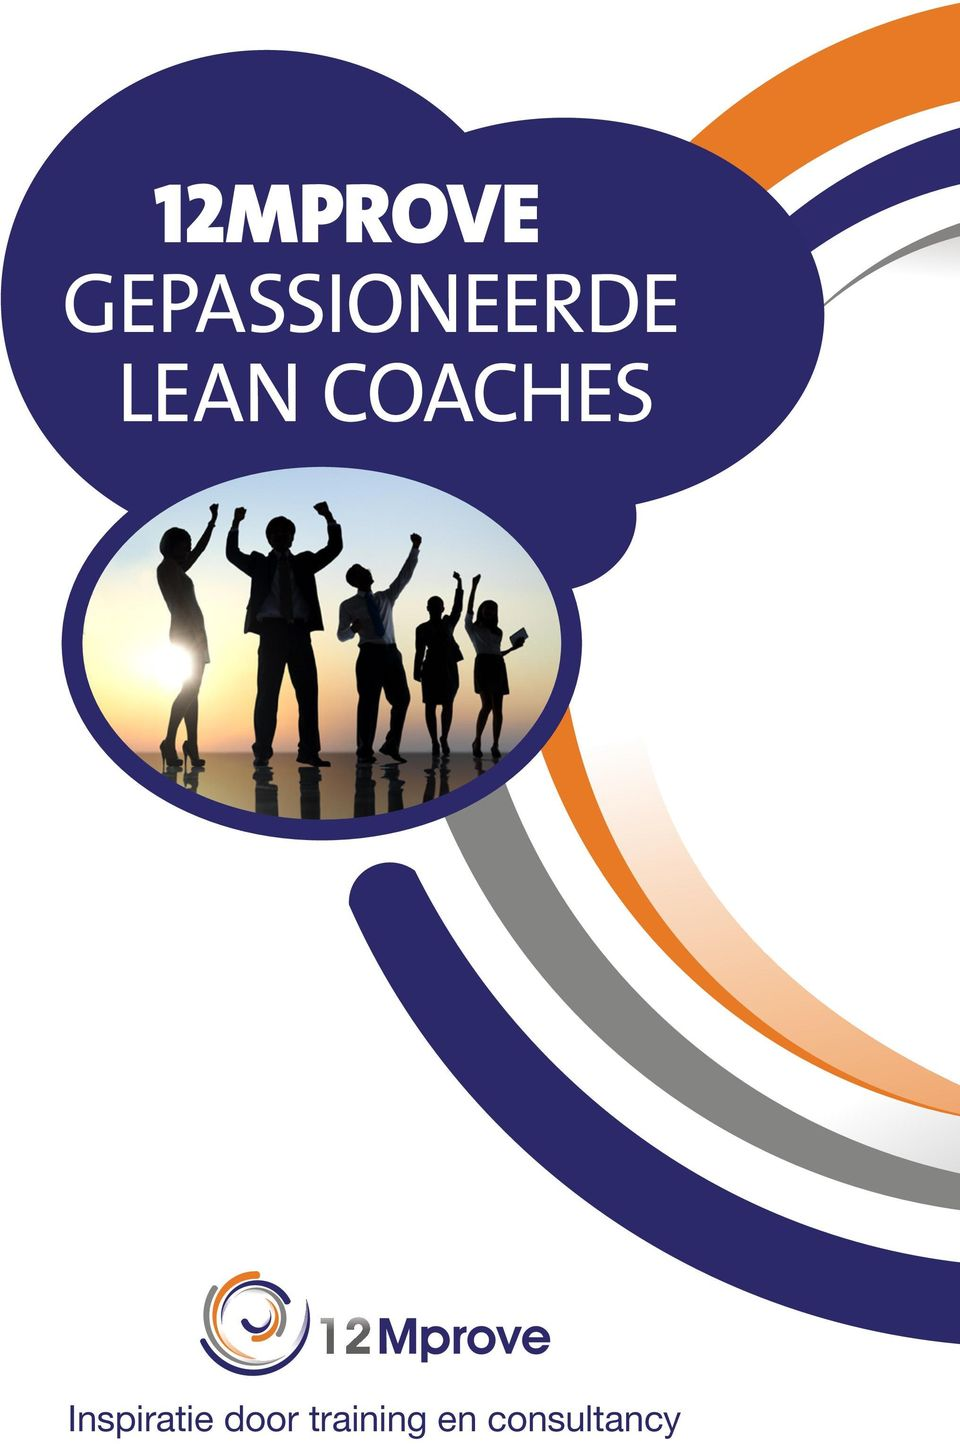 LEAN COACHES